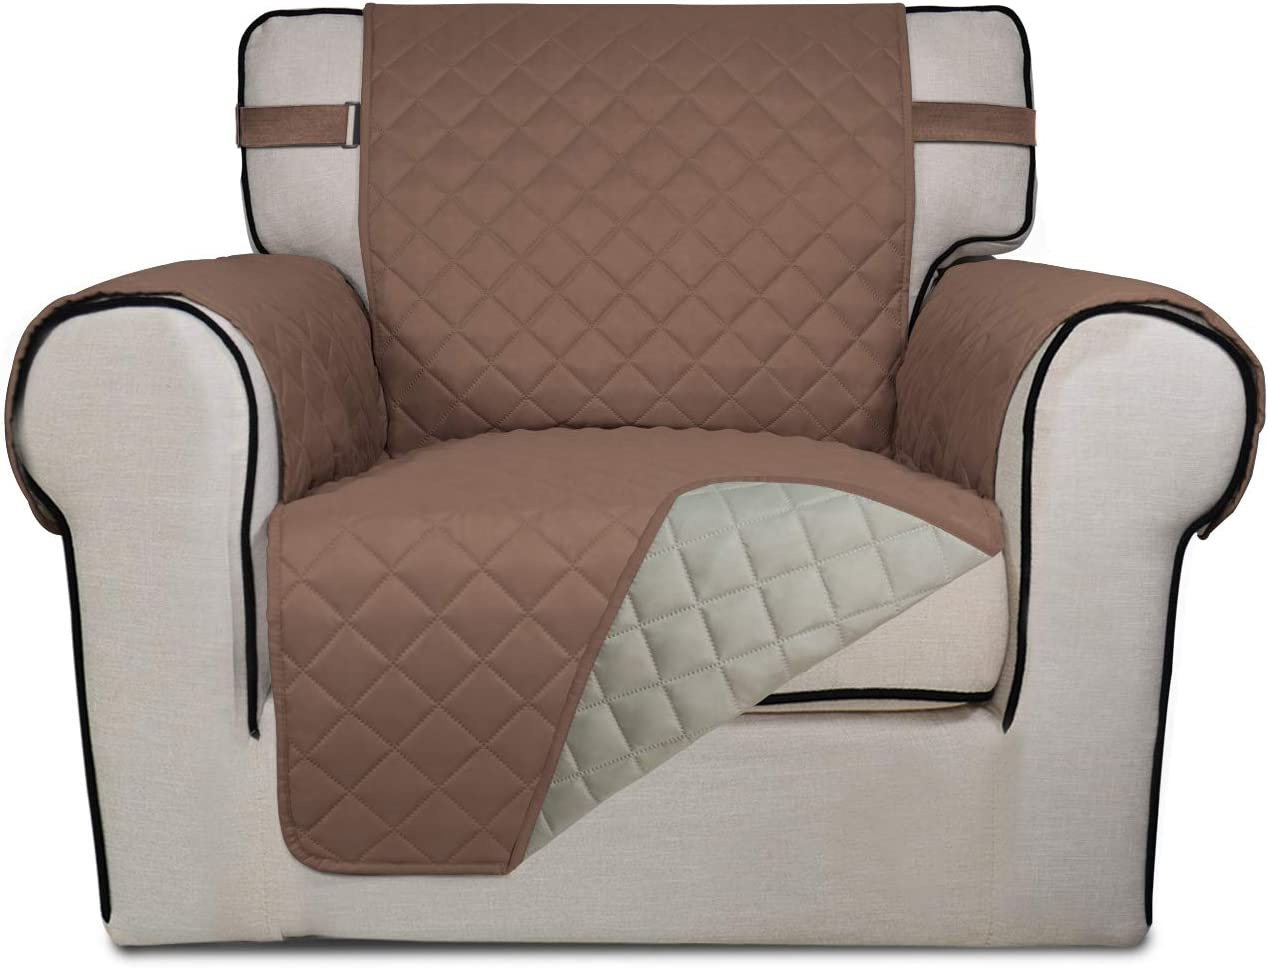 PureFit Reversible Quilted Sofa Cover, Spill, Water Resistant Slipcover Furniture Protector, Washable Couch Cover with Non Slip Foam and Adjustable Strap for Kids, Pets (Chair, Brown/Beige)